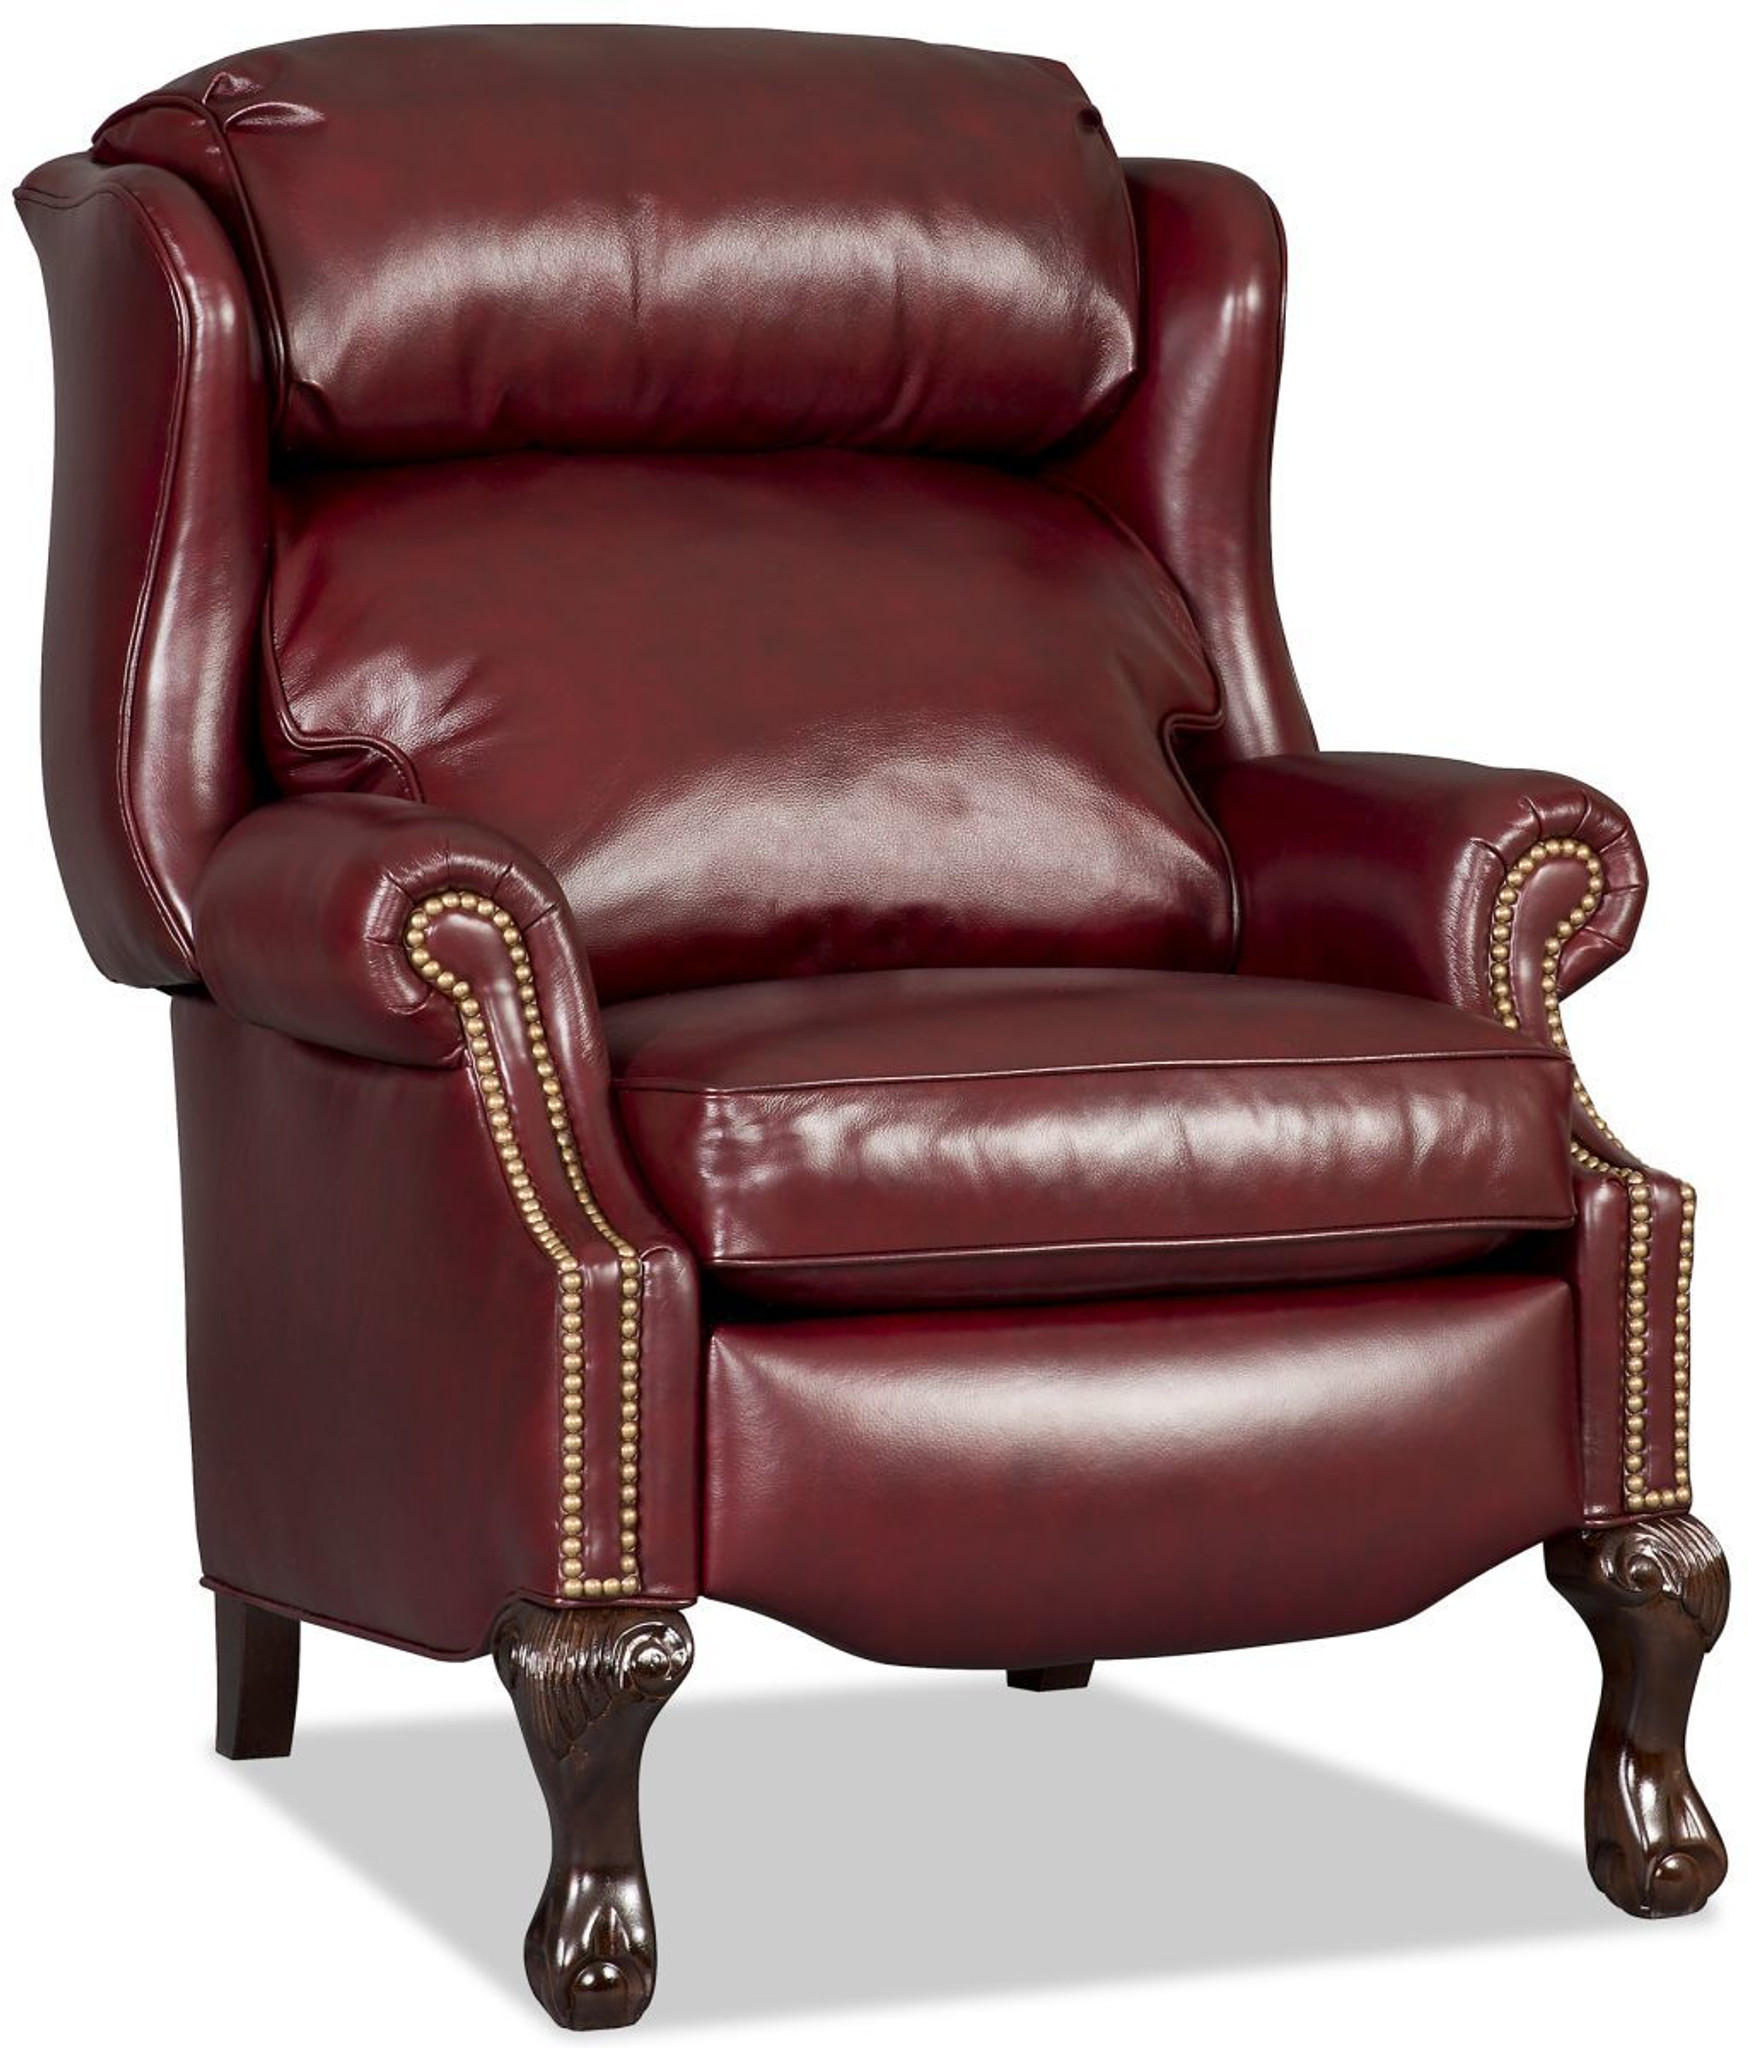 Bradington Young 4115 Ball Claw Recliner Special